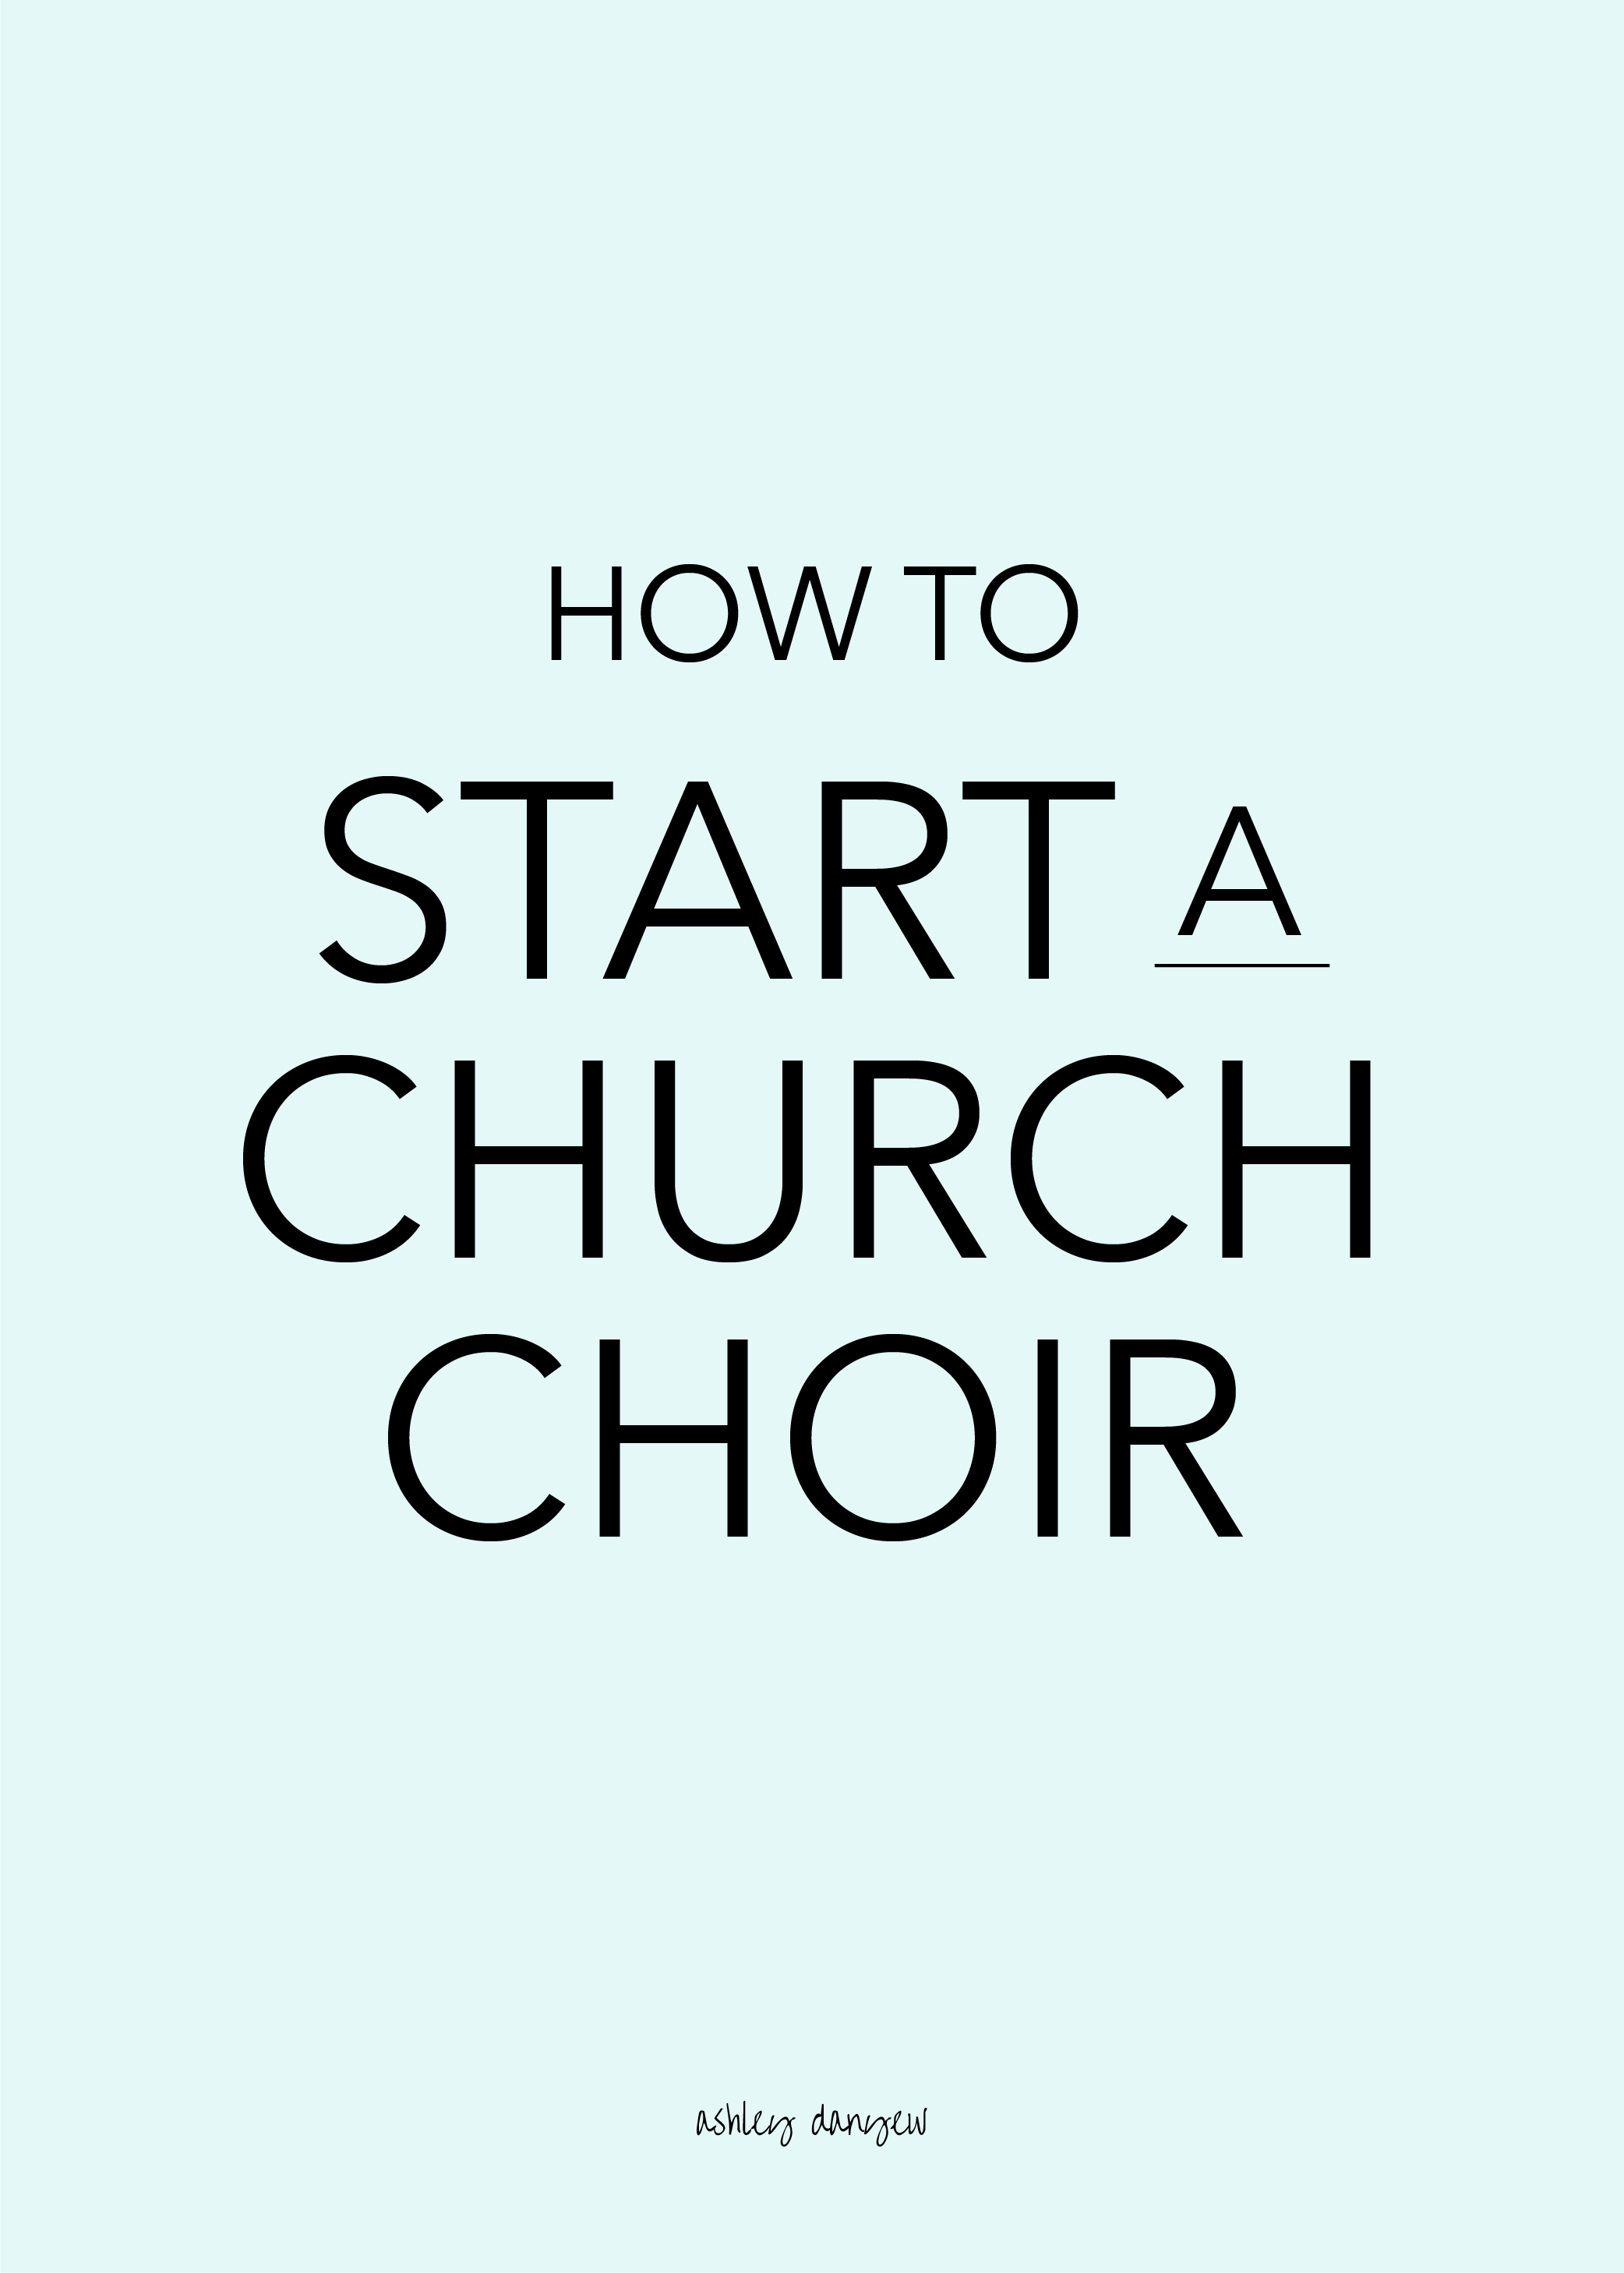 Copy of How to Start a Church Choir